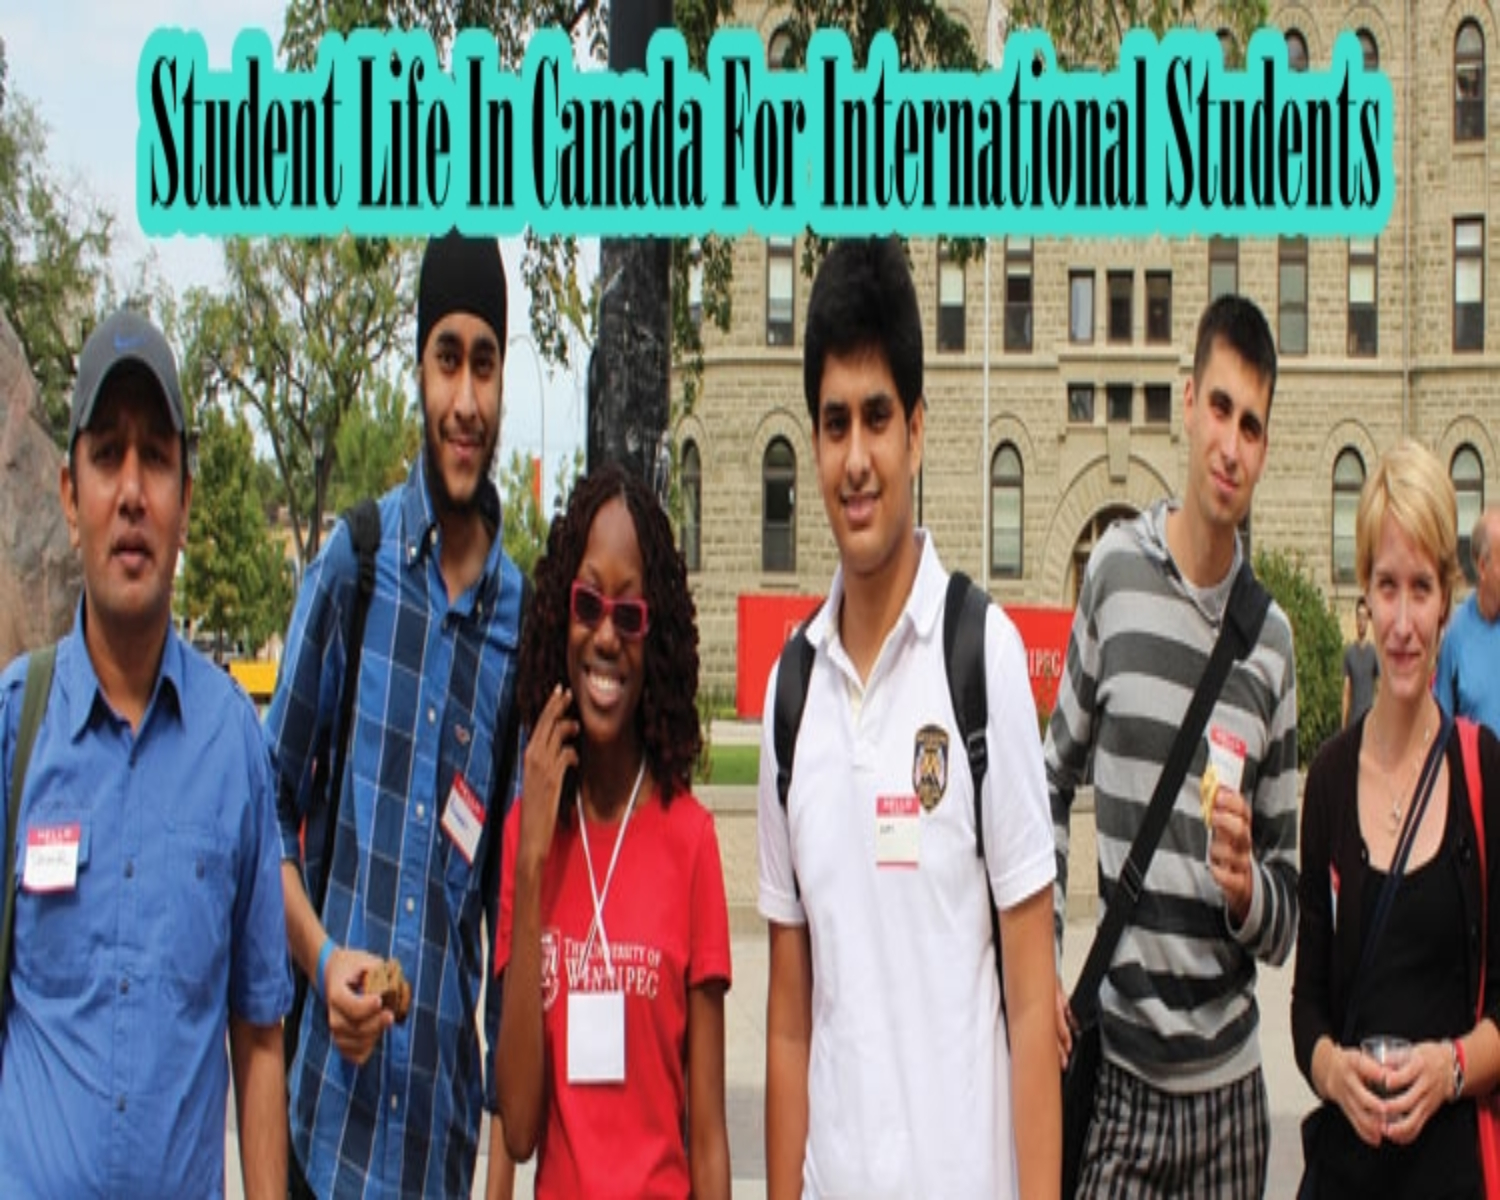 life as a student in Canada